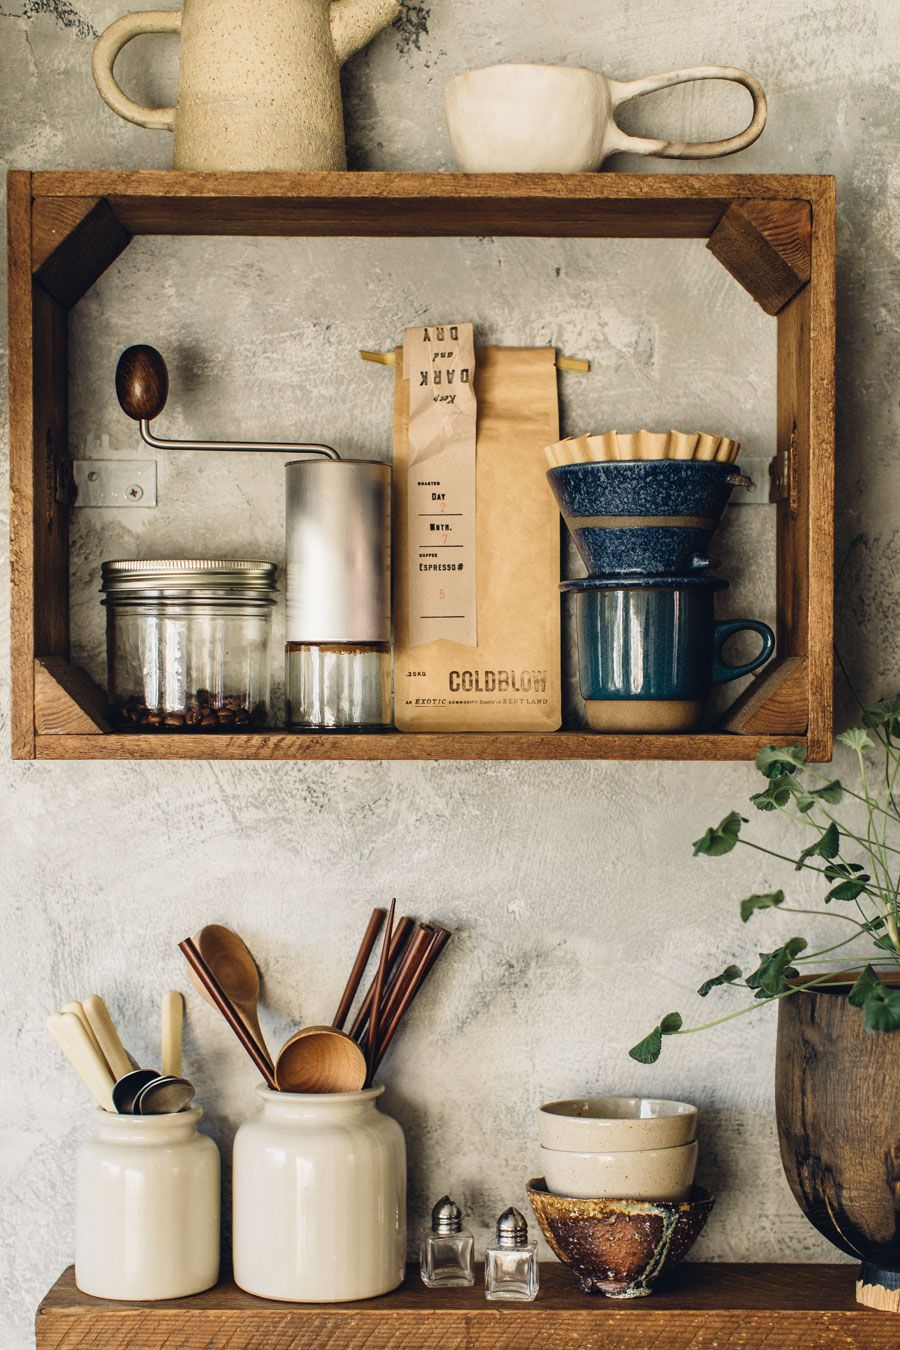 Up cycled kitchen shelves